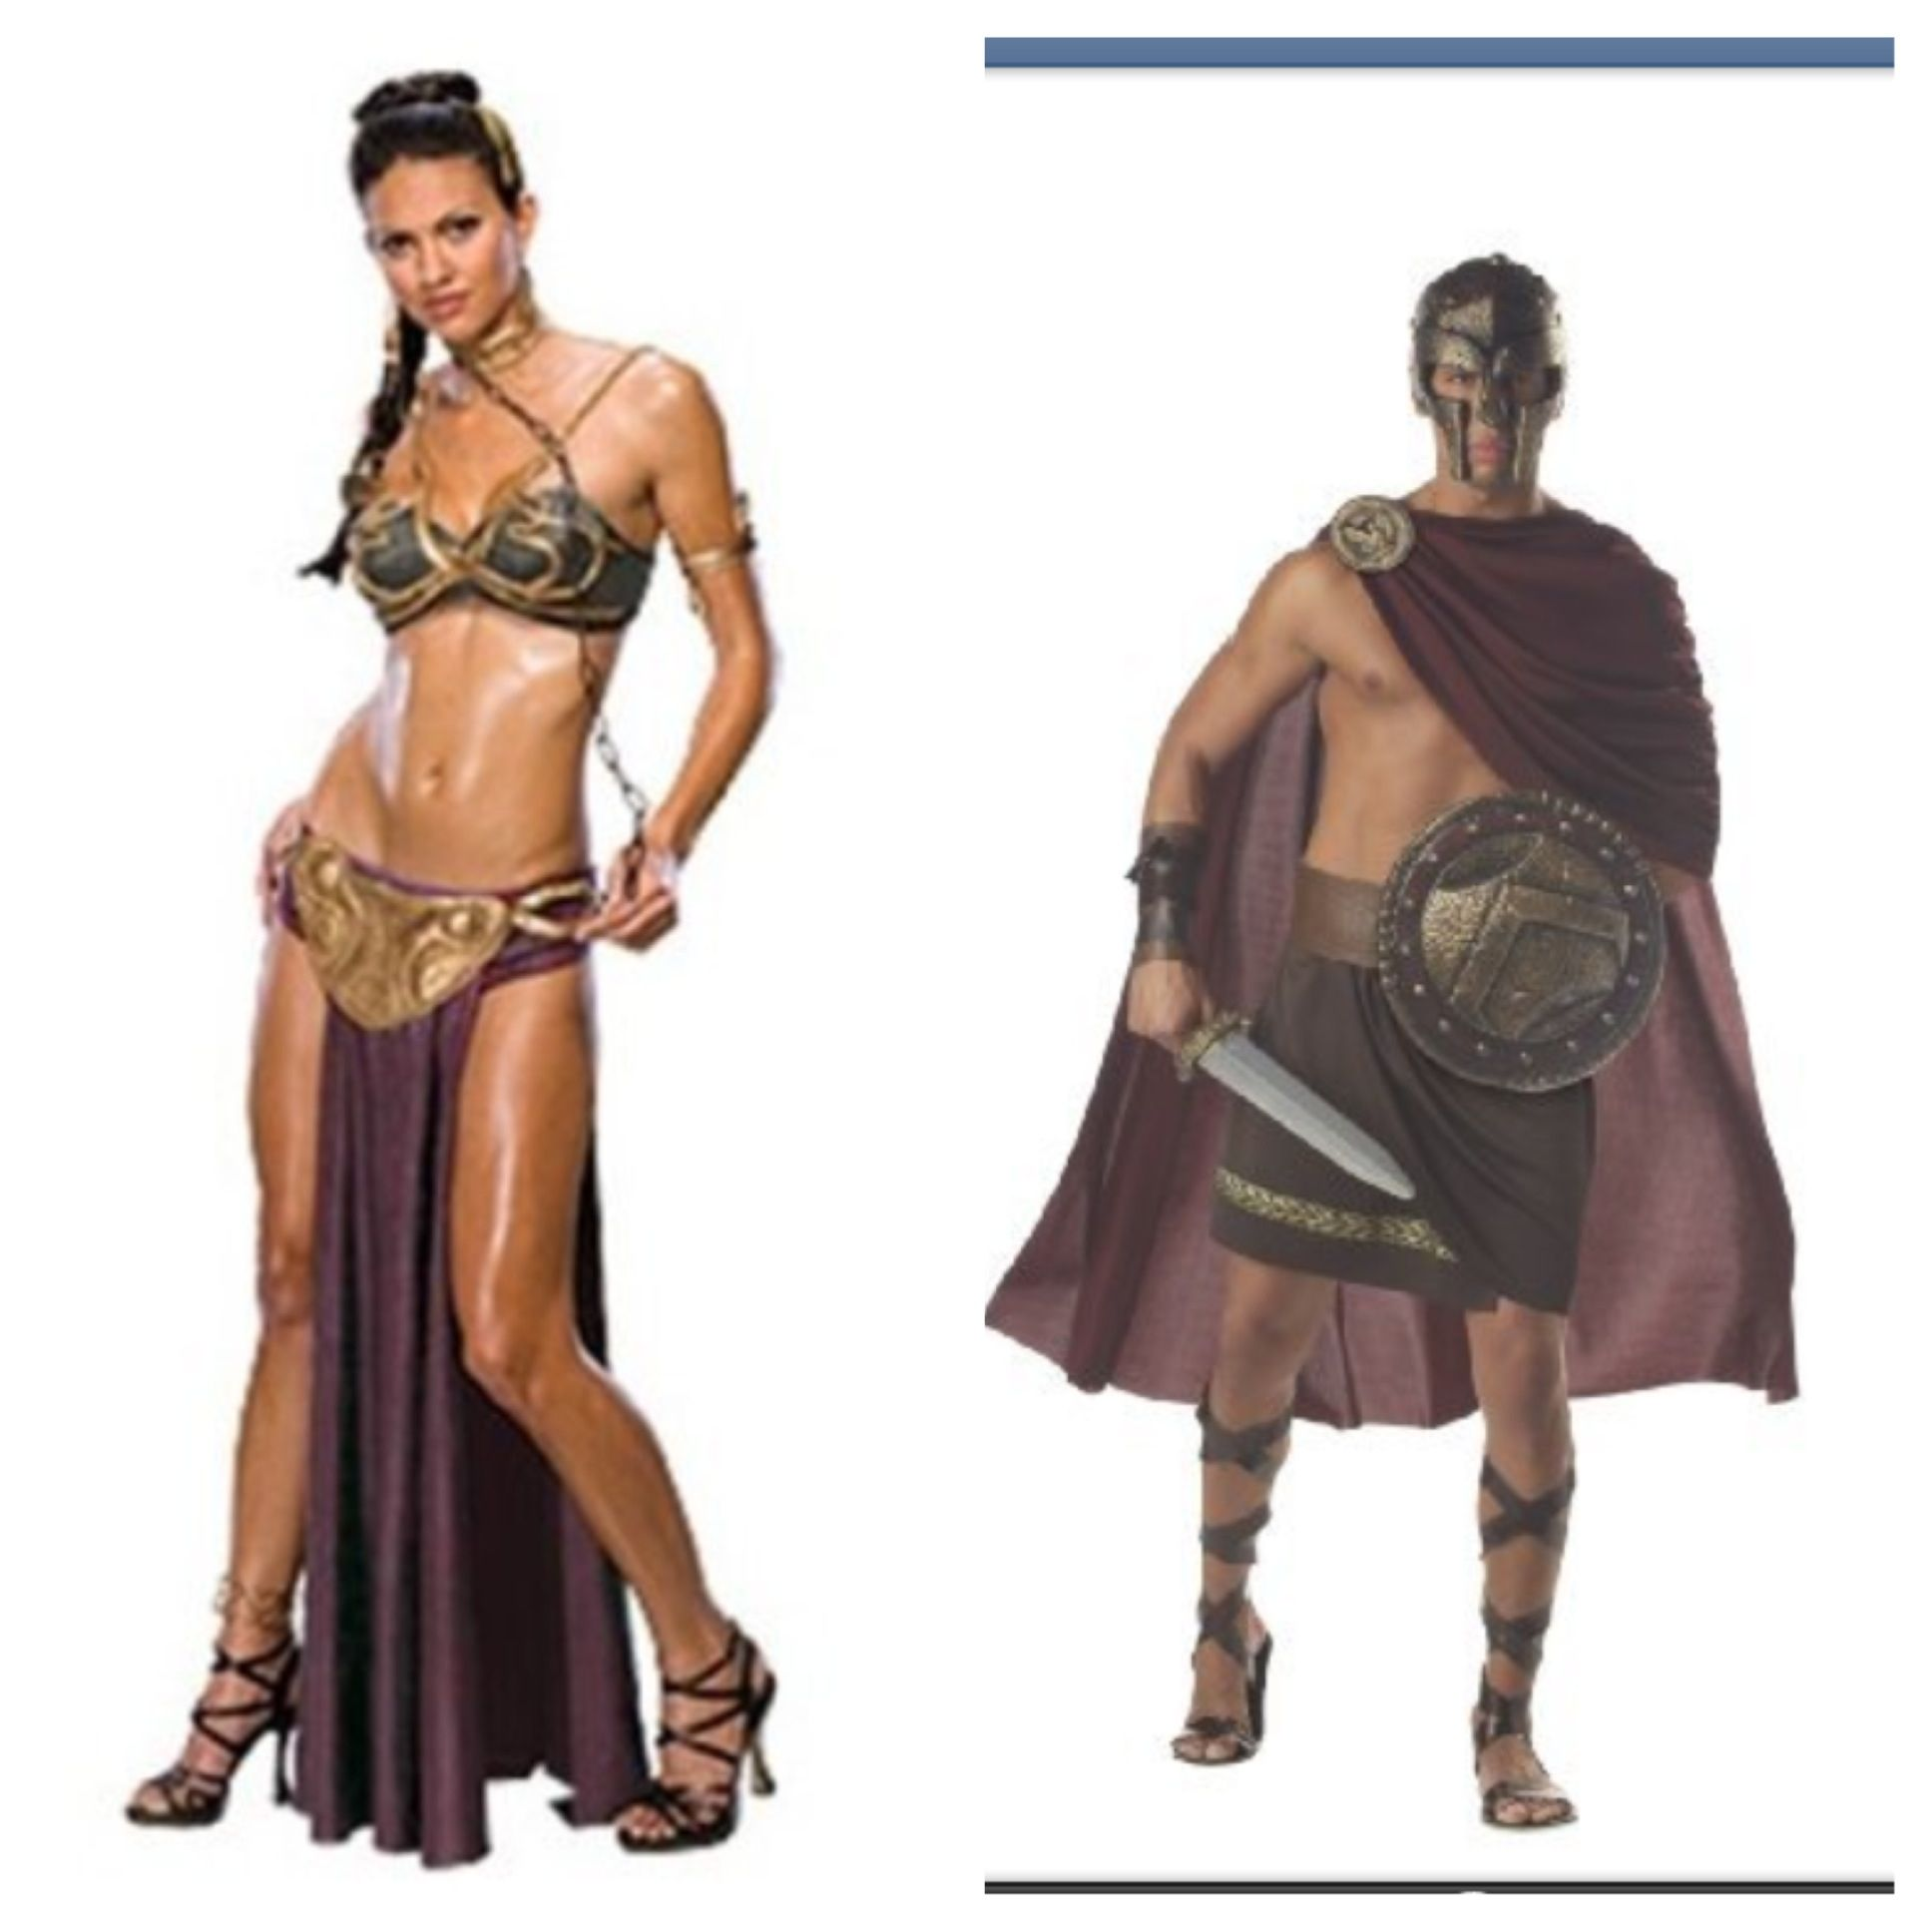 Spartan couples costumes | halloween | Pinterest | Costumes ...